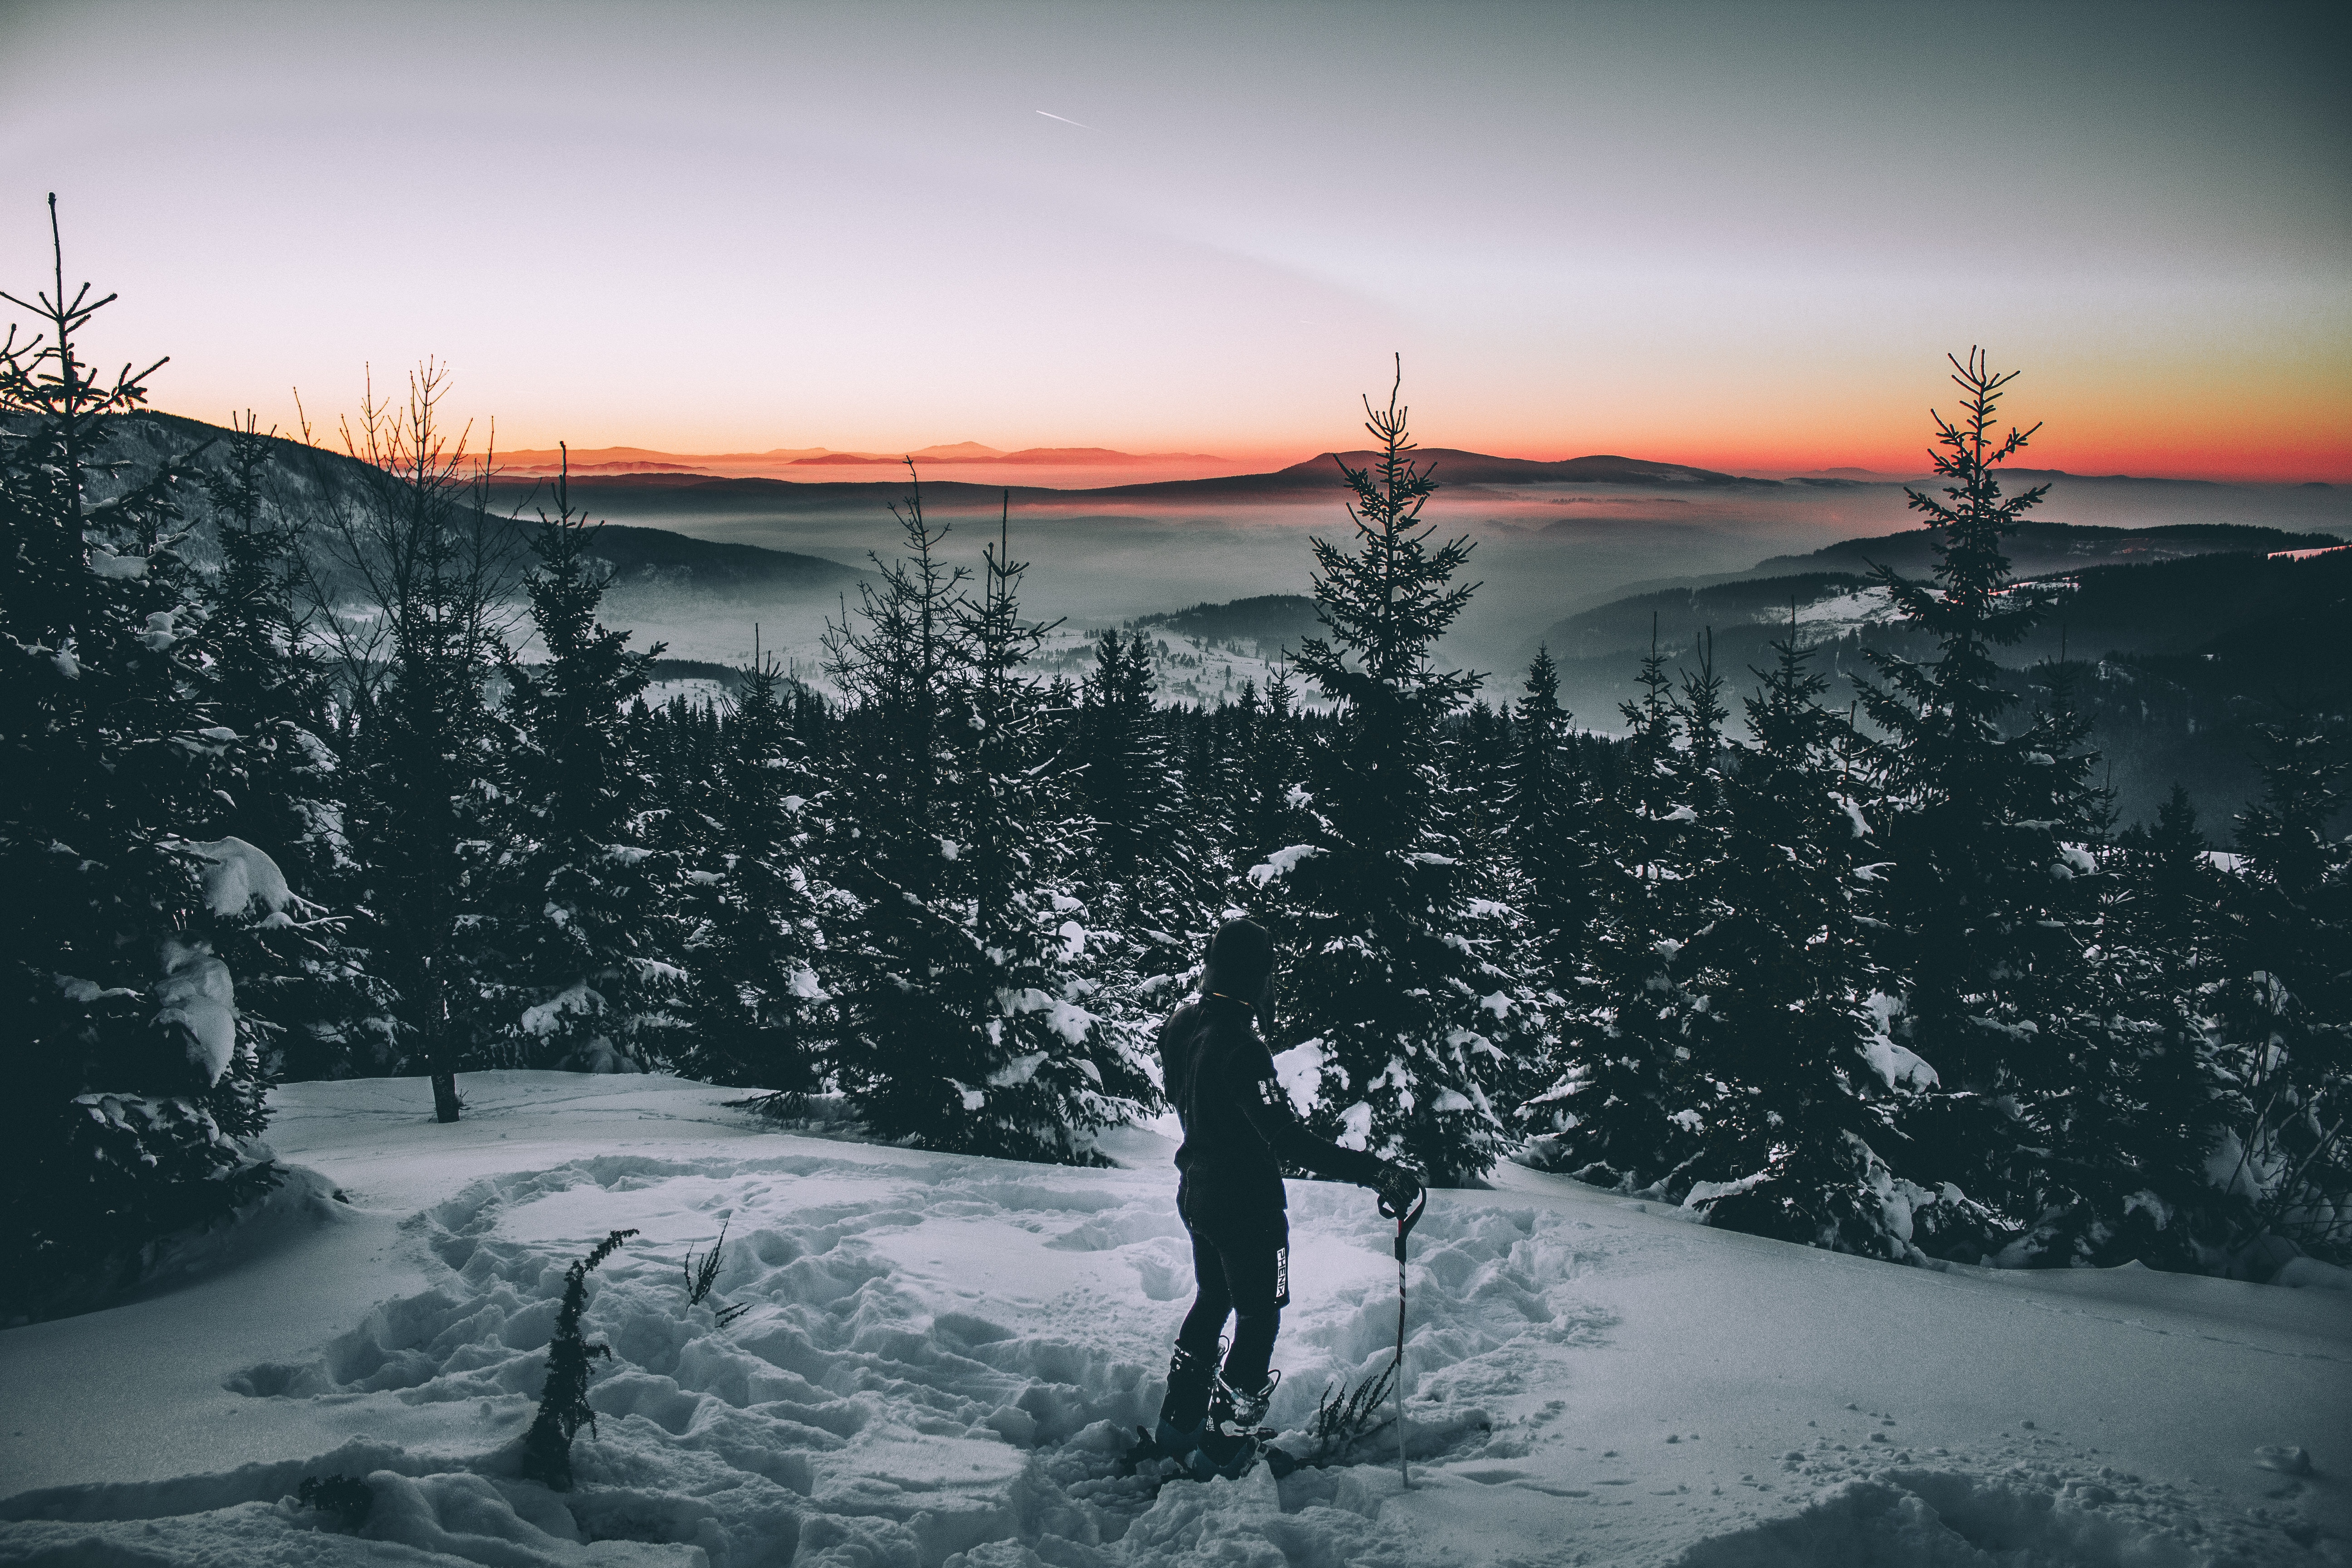 105668 download wallpaper Snow, Winter, Trees, Dark, Skier screensavers and pictures for free